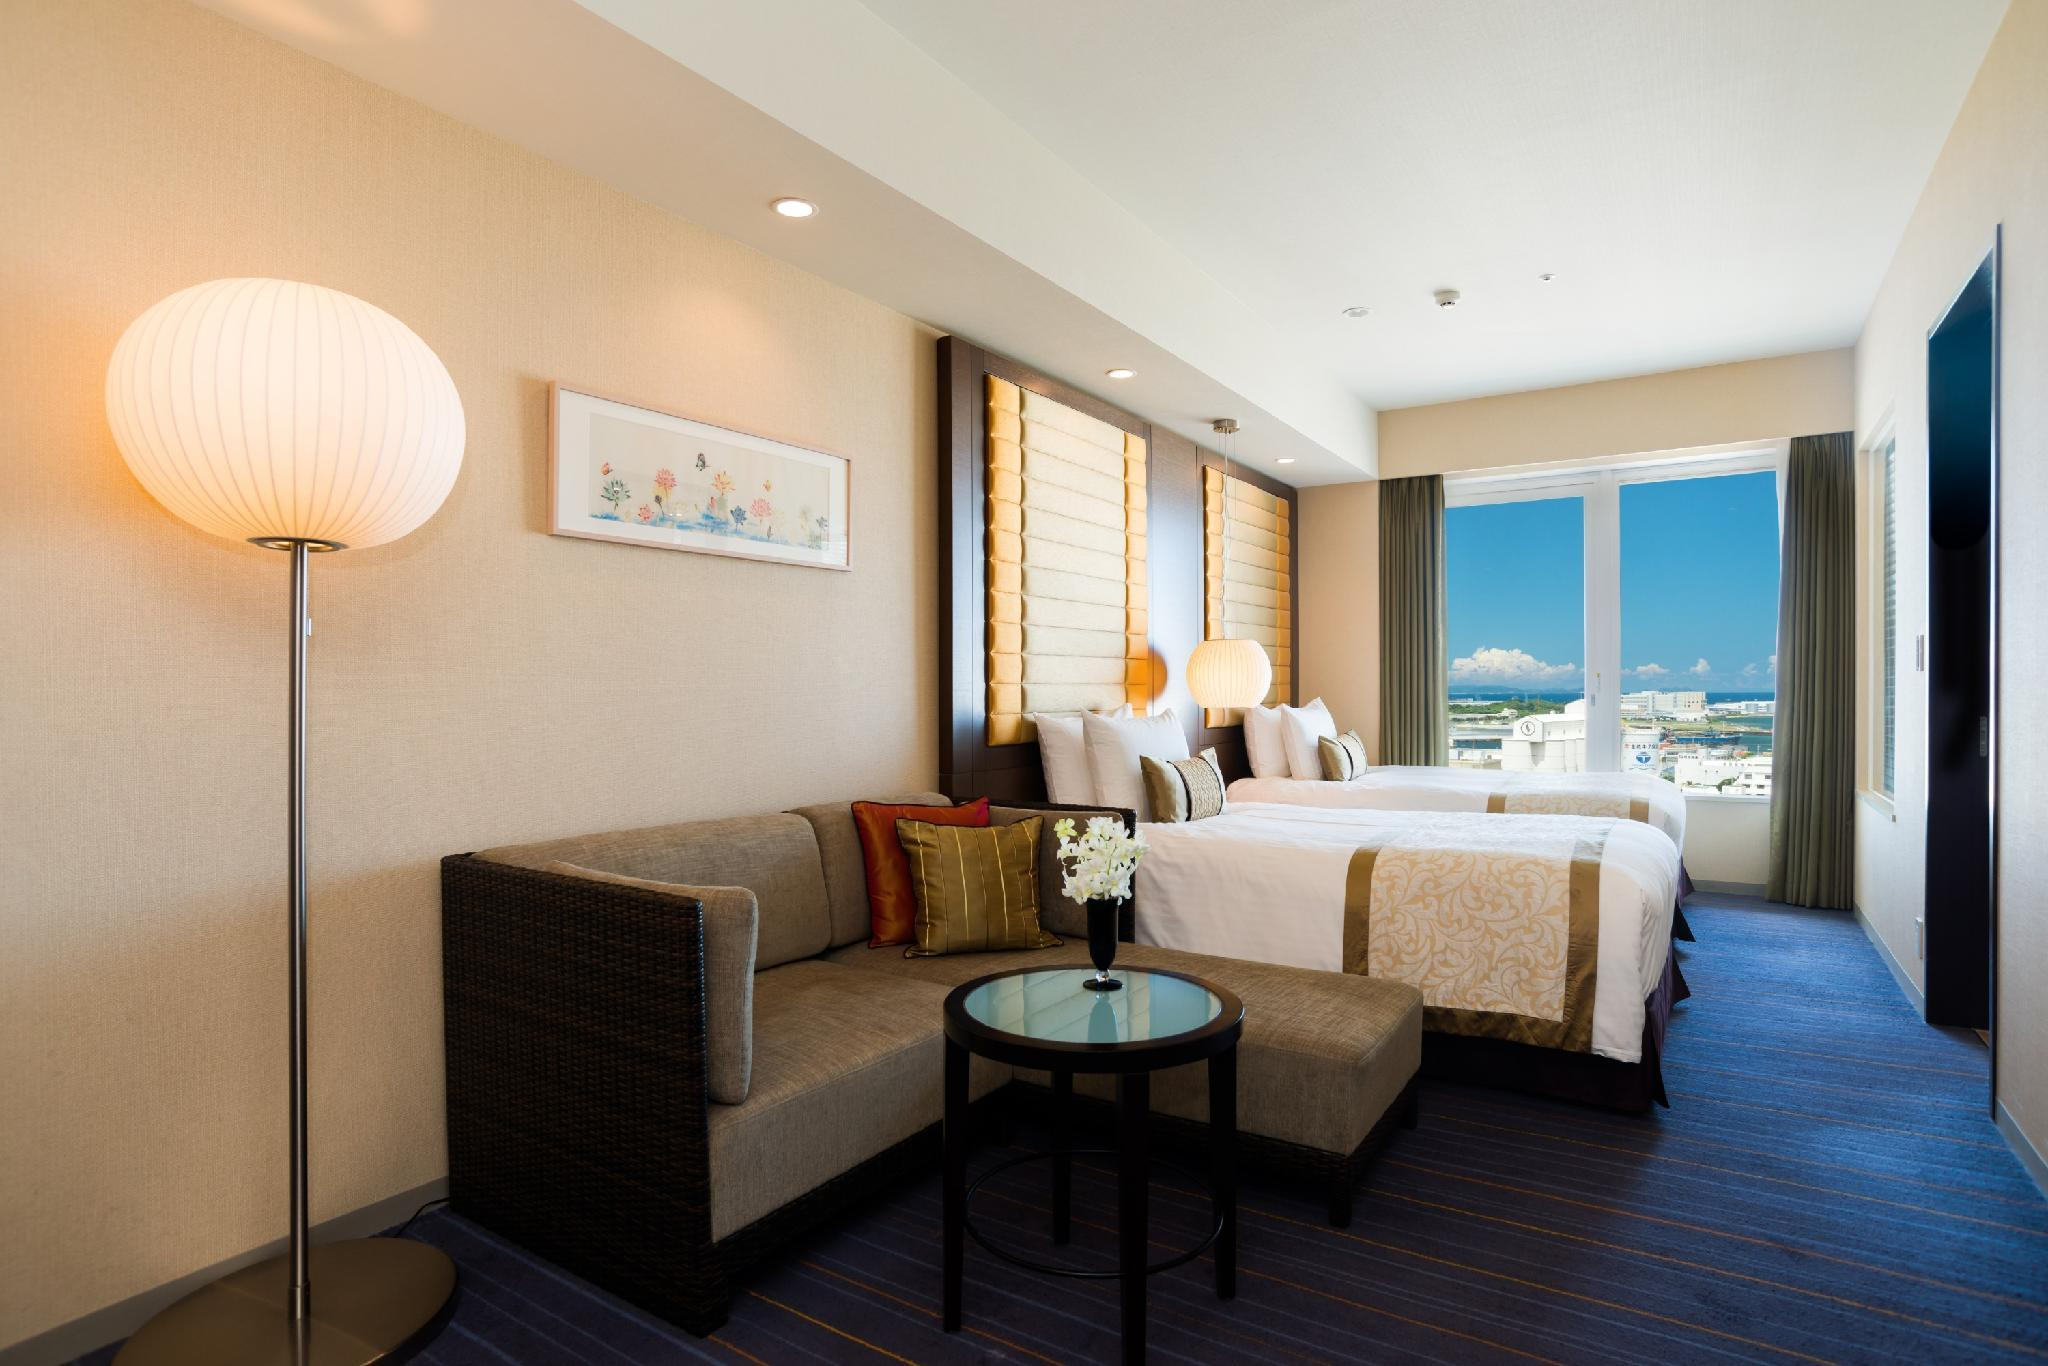 灣畔頂級房(兩床) - 限住1人/有景觀衛浴/禁菸 (Premier Bayside Twin Room for 1 Person with Bathroom with View - Non-Smoking)